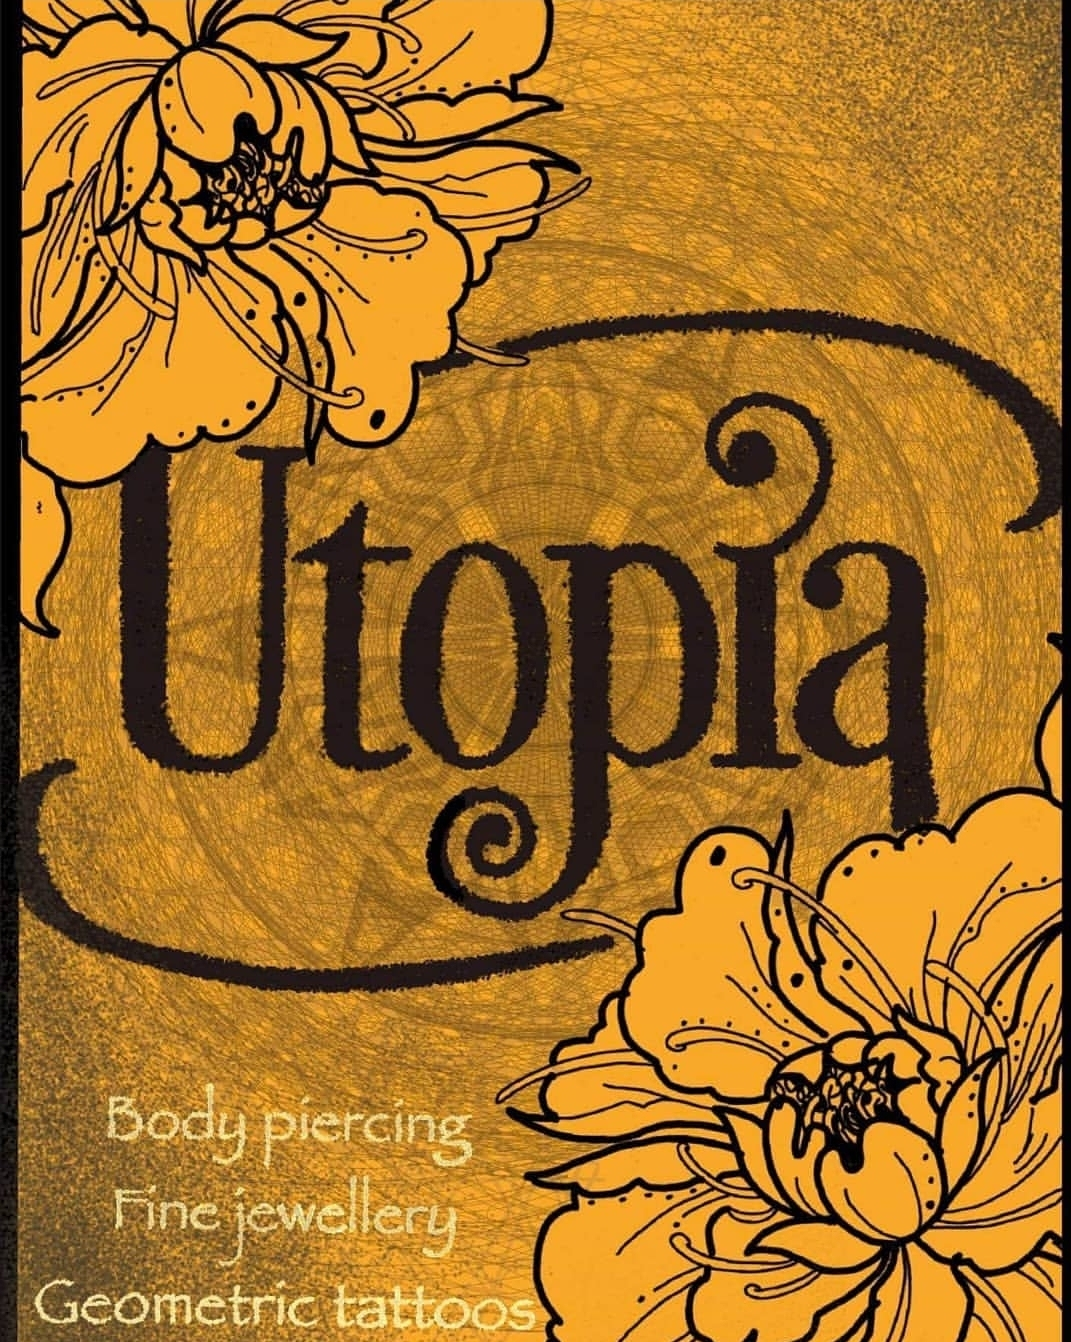 Utopia Body Arts